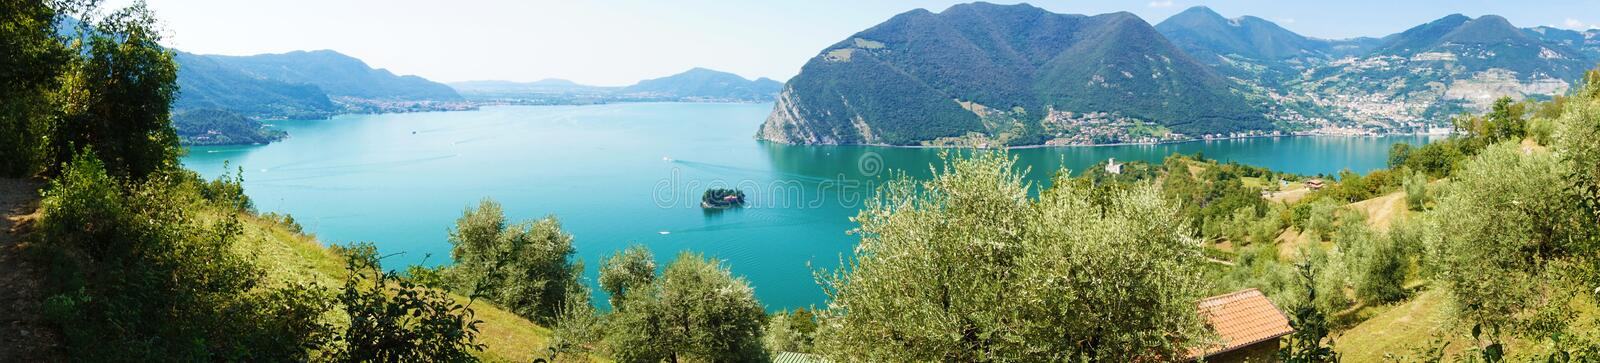 Panoramic view of mountain lake with island in the middle. Panorama from Monte Isola Island with Lake Iseo. Italian landscape. stock photos